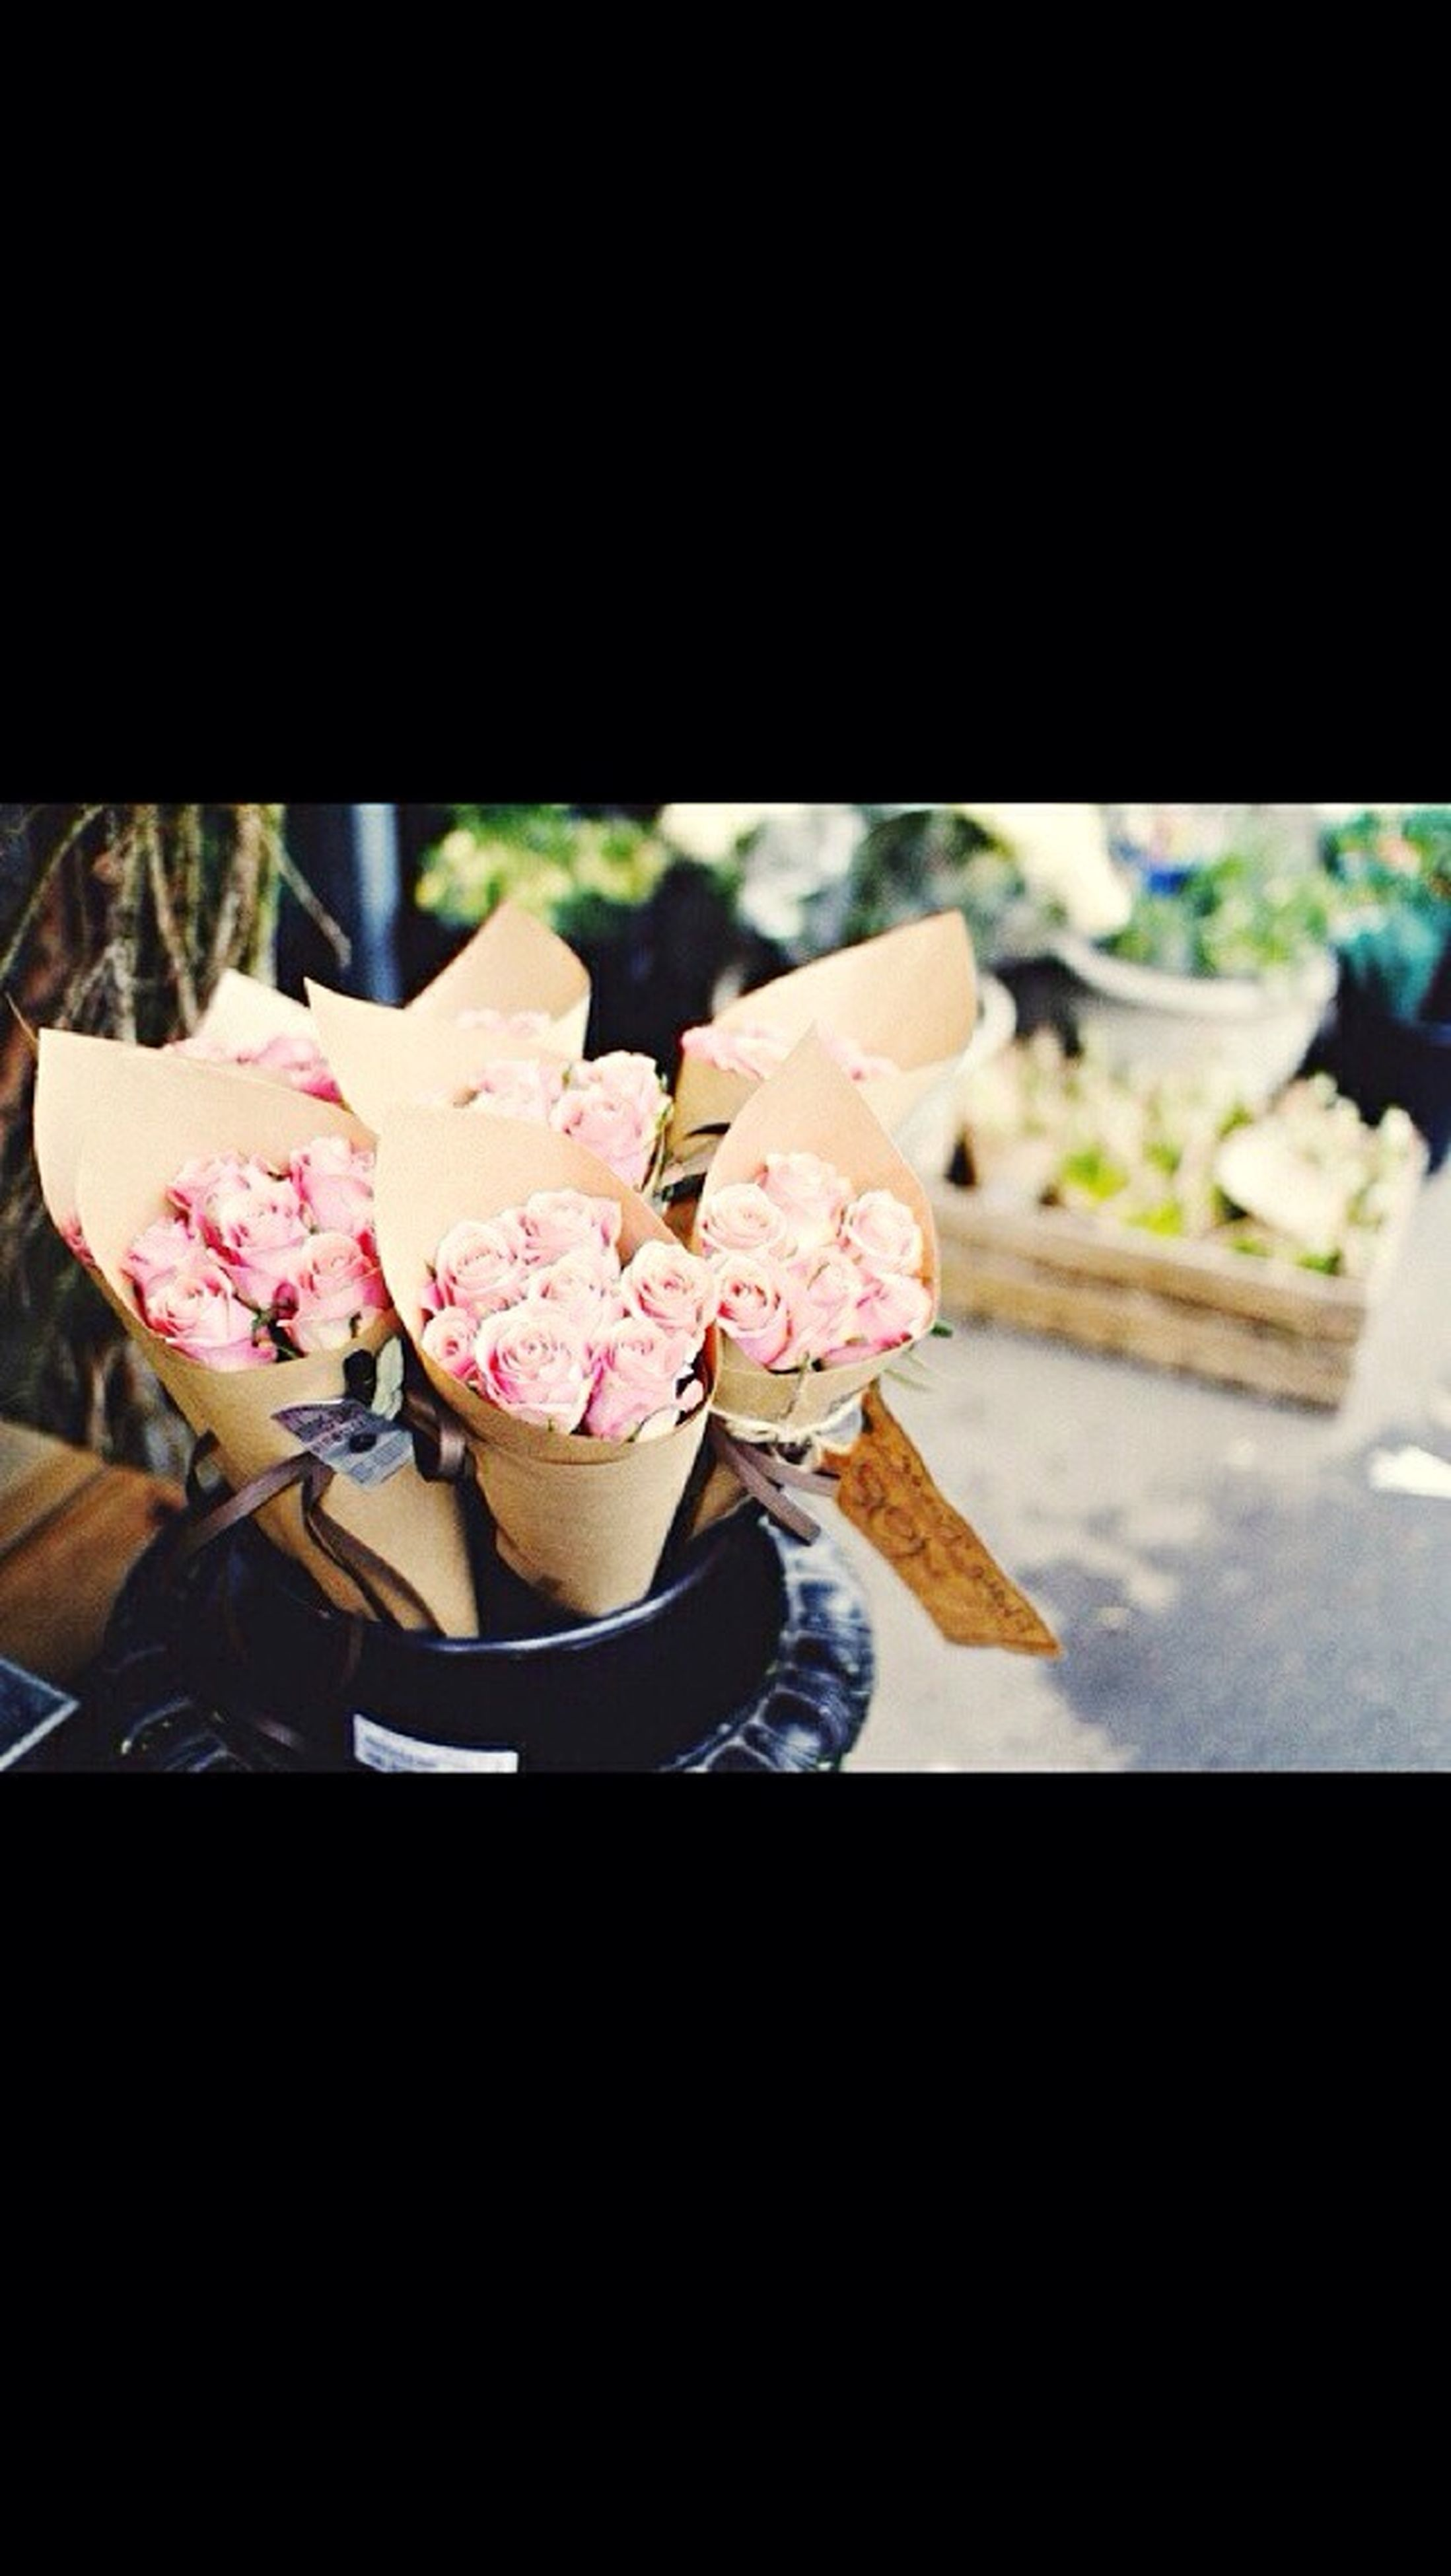 indoors, flower, fragility, close-up, freshness, petal, rose - flower, one person, home interior, vase, flower head, pink color, table, still life, bouquet, focus on foreground, high angle view, auto post production filter, plant, selective focus